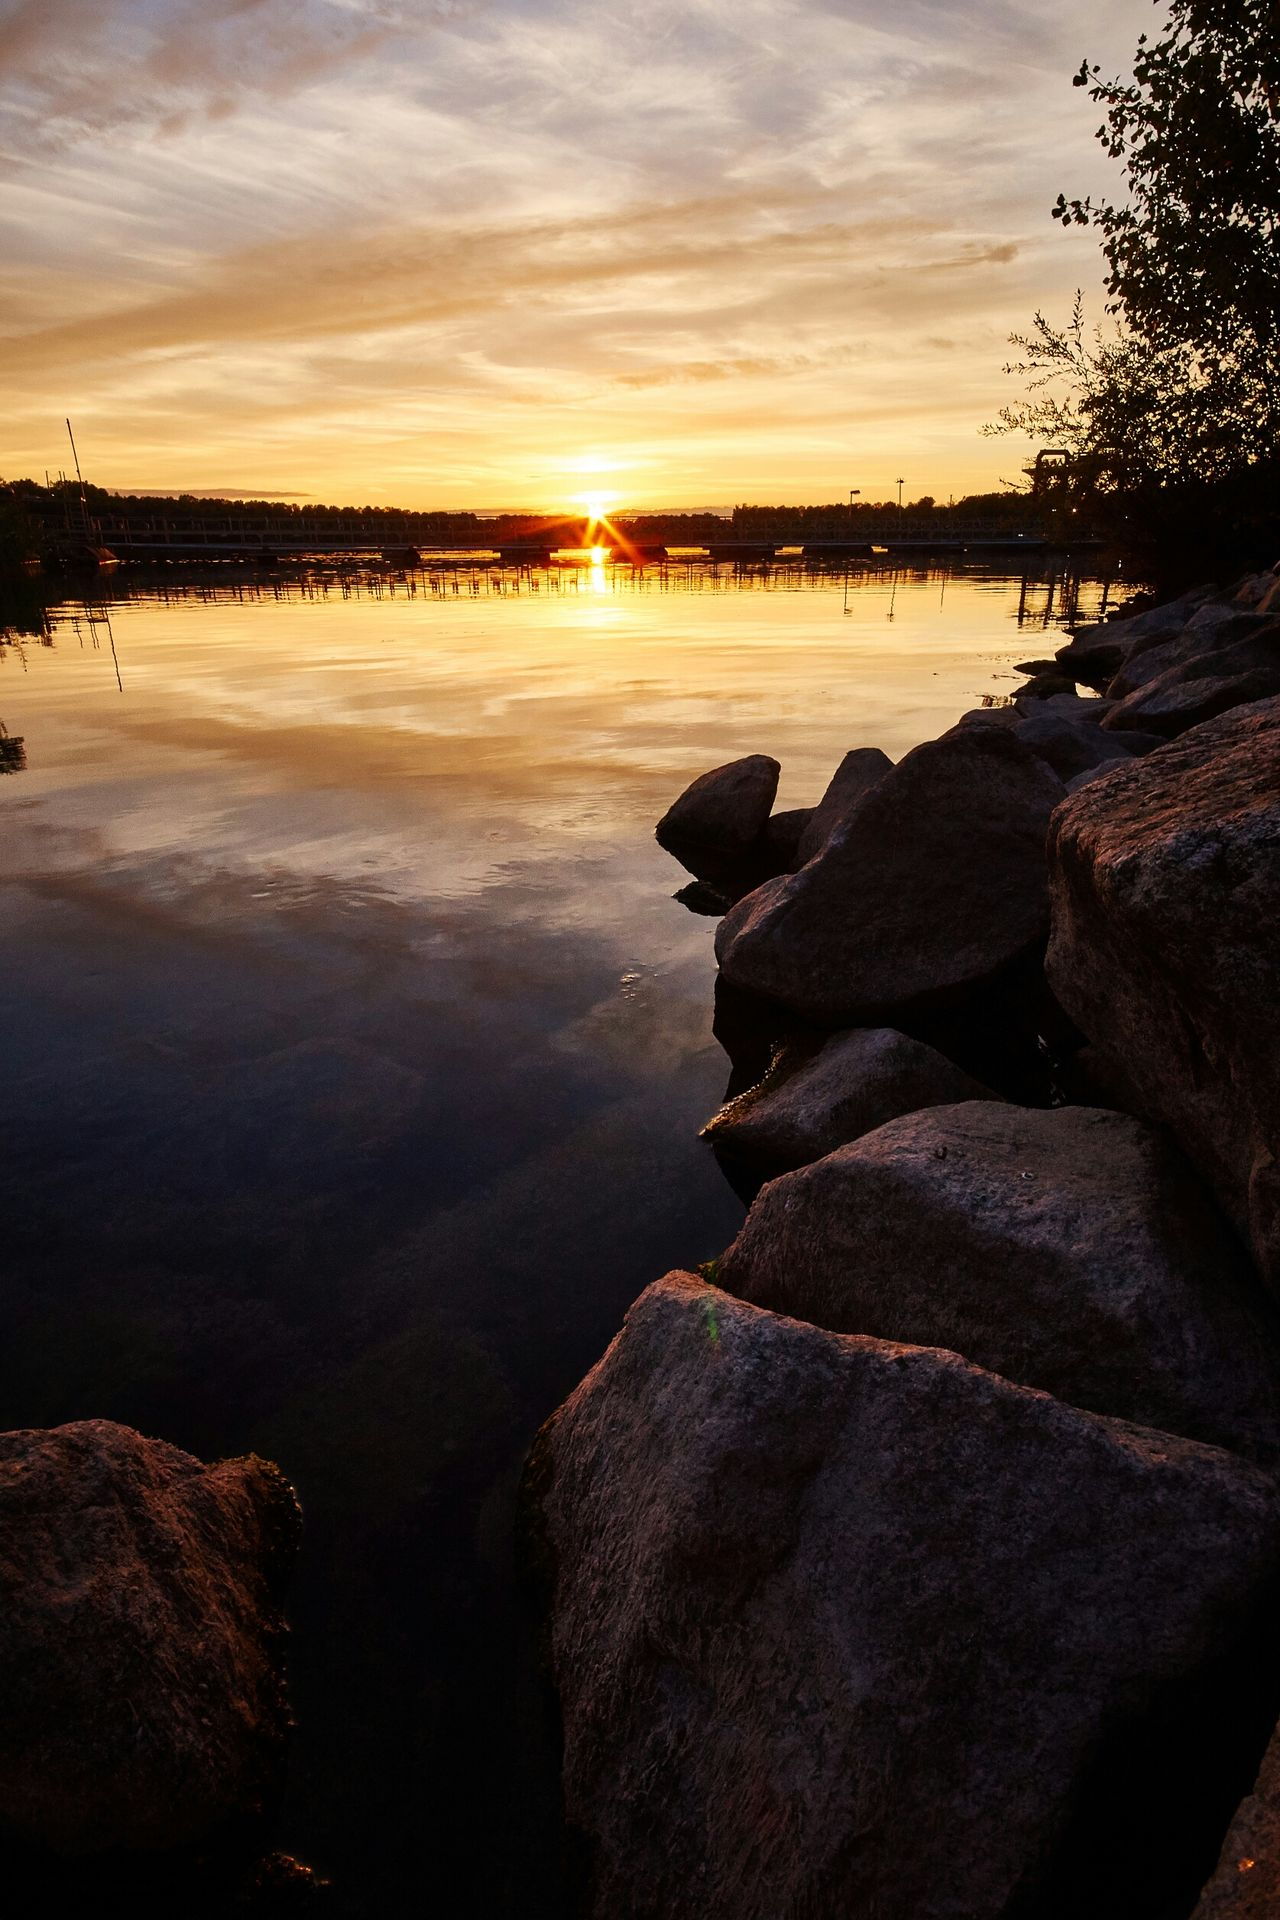 Sunset Water Rocks Taking Photos Naturephotography Sunsets Relax Photos Around You Nature Germany Light Rocks And Water Contrast Outdoor Photography Outdoor Water_collection Lake View Rocks In Water Landscapes With WhiteWall Landscape With Whitewall The KIOMI Collection